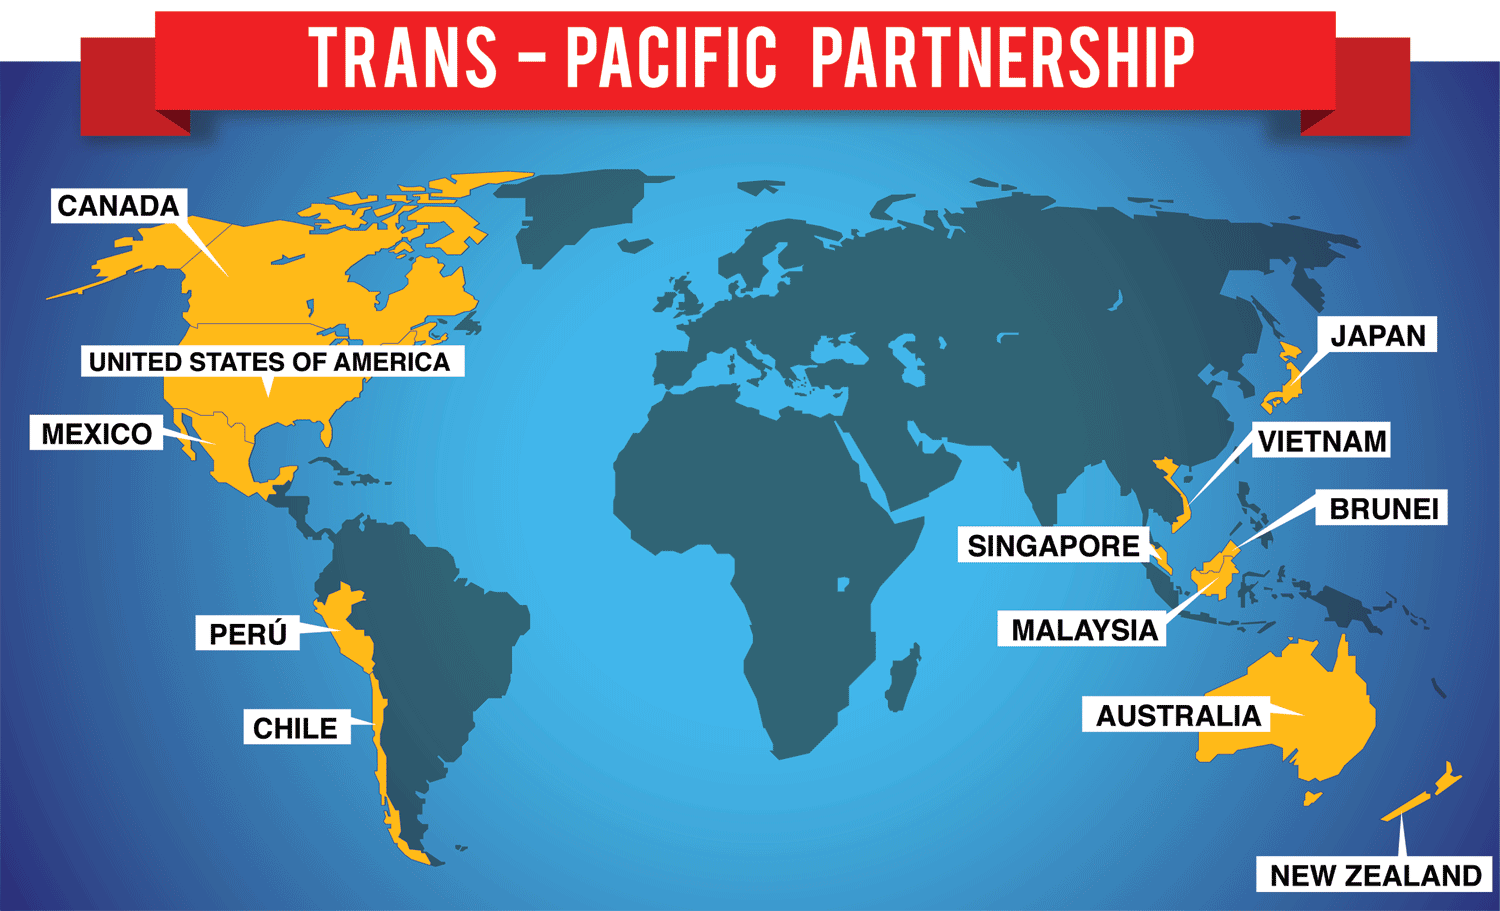 What Is The Trans Pacific Partnership Agreement